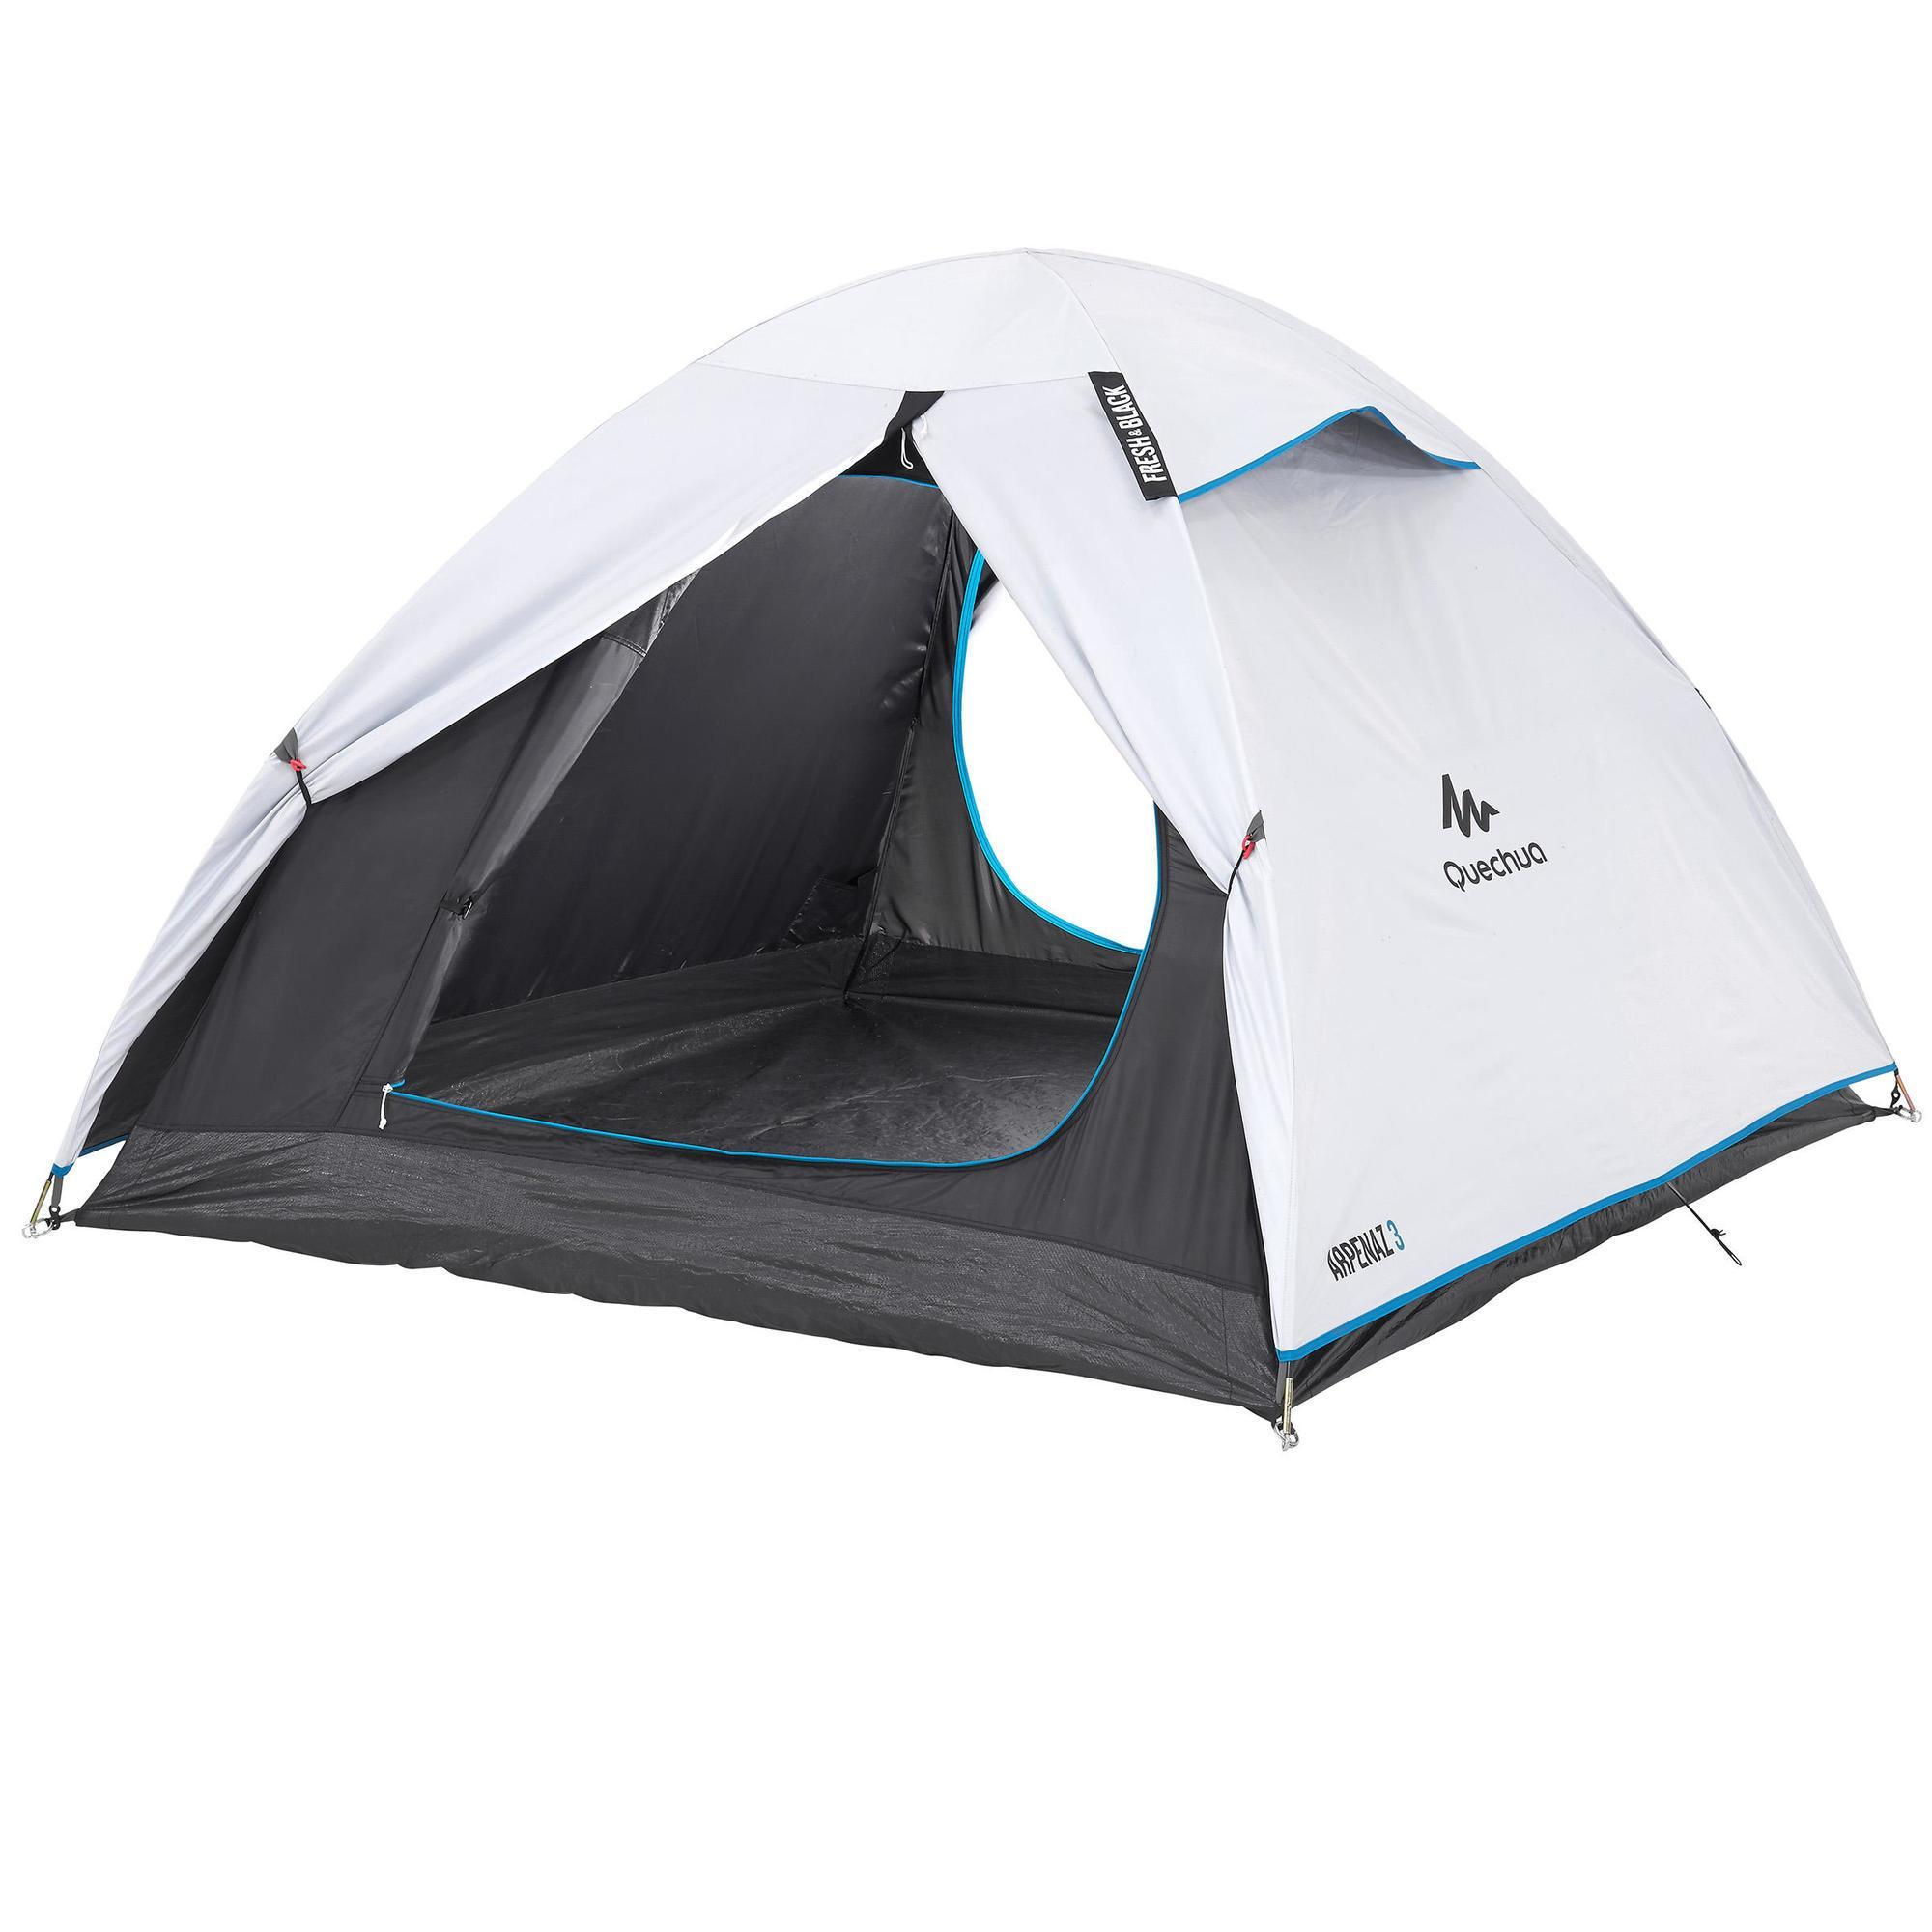 Quechua 2 SECONDS III Tente 3 Personnes EASY Pop-Up Camping-Tente plage rouge